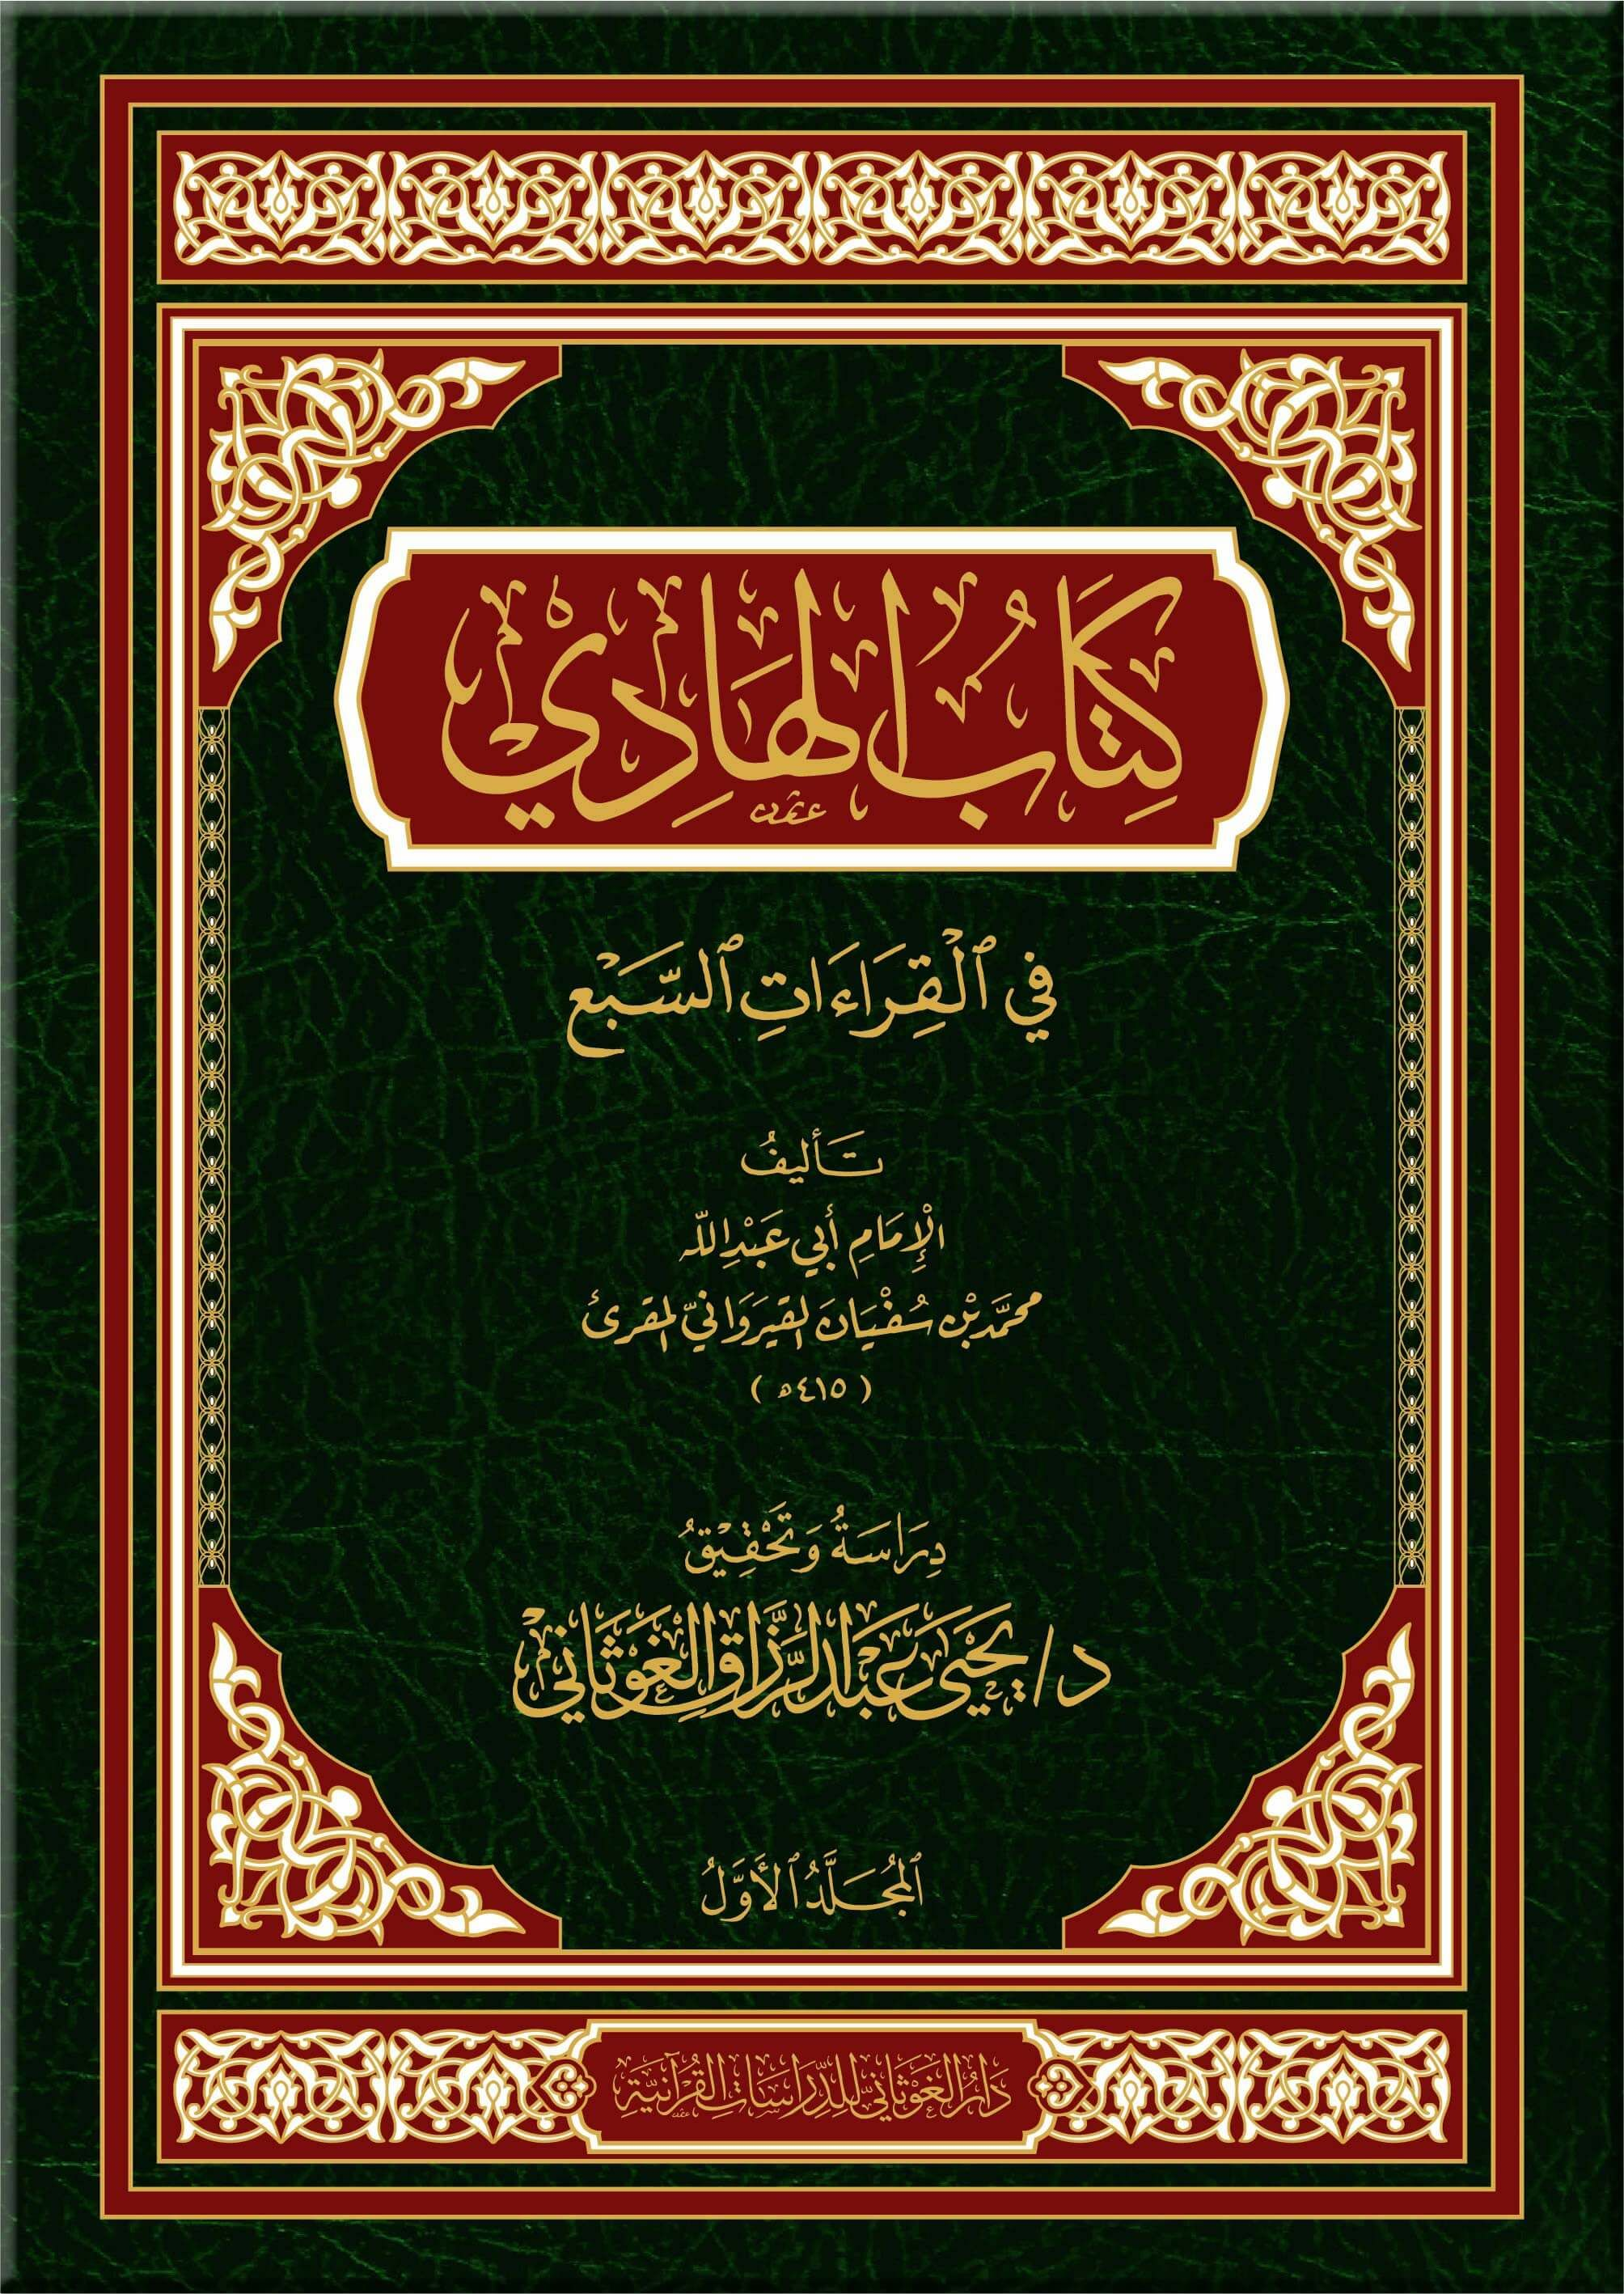 The Guide to the Seventh Recitations 1/2 (By Imam Abi Abdullah Al-Qairawani Al-Muqri')